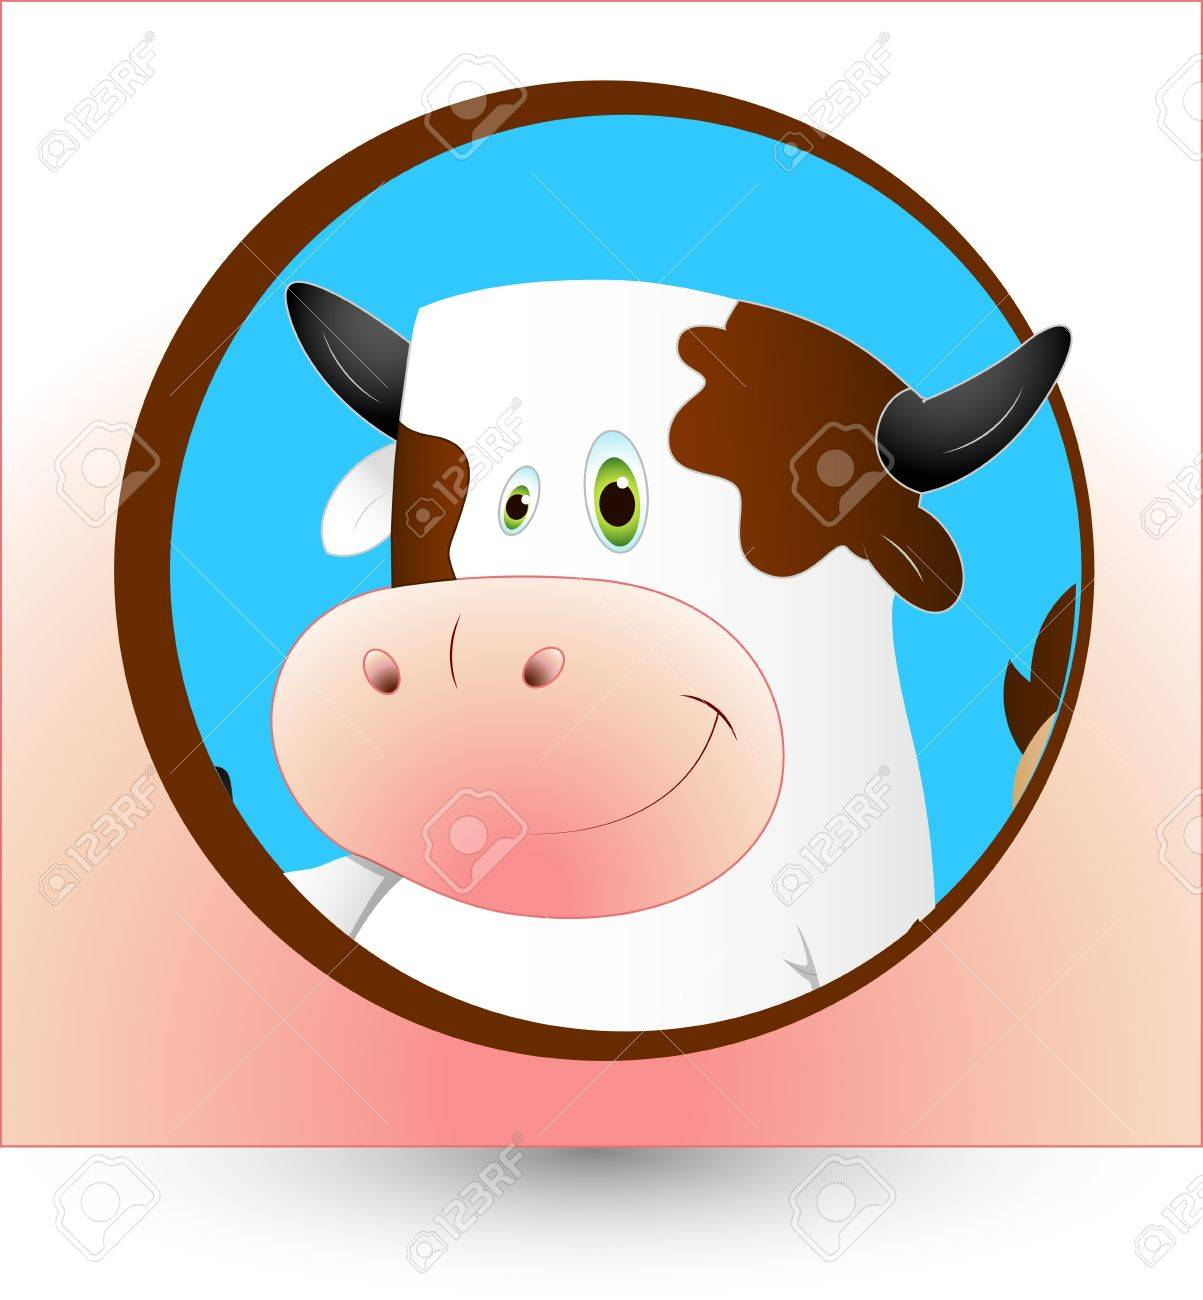 hight resolution of dairy cow clipart stock vector 12861562